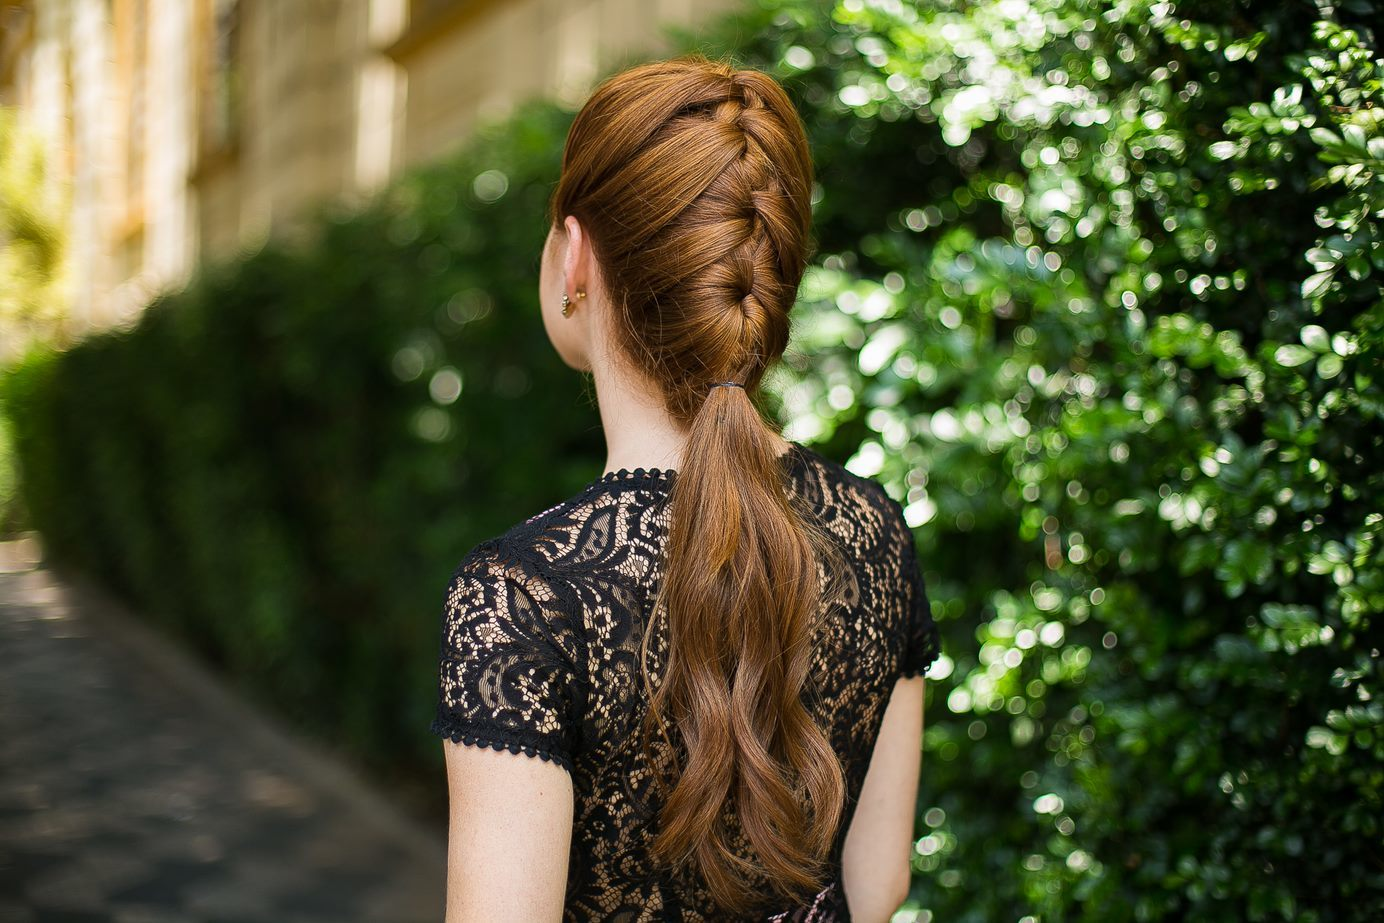 Wedding updos for long hair: Back shot of a model with long dark ginger hair styled into a French braided ponytail, wearing a dark dress and posing outside.